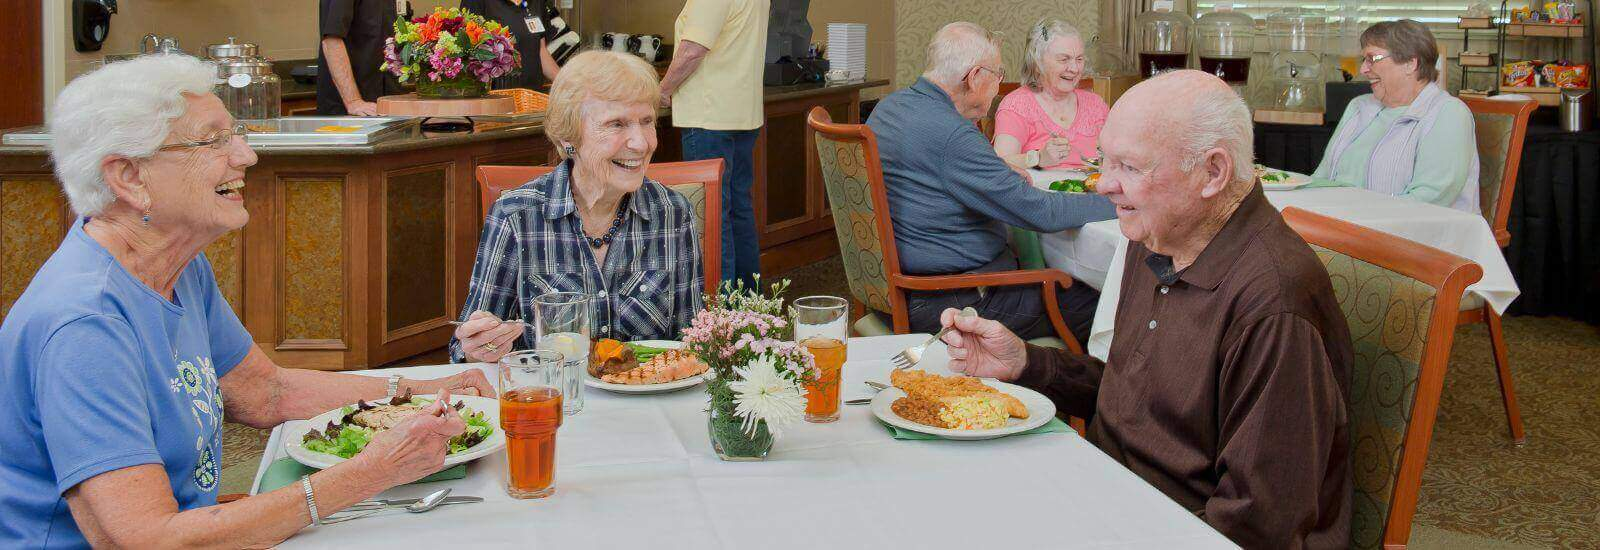 Dining Services at Asbury Place Maryville